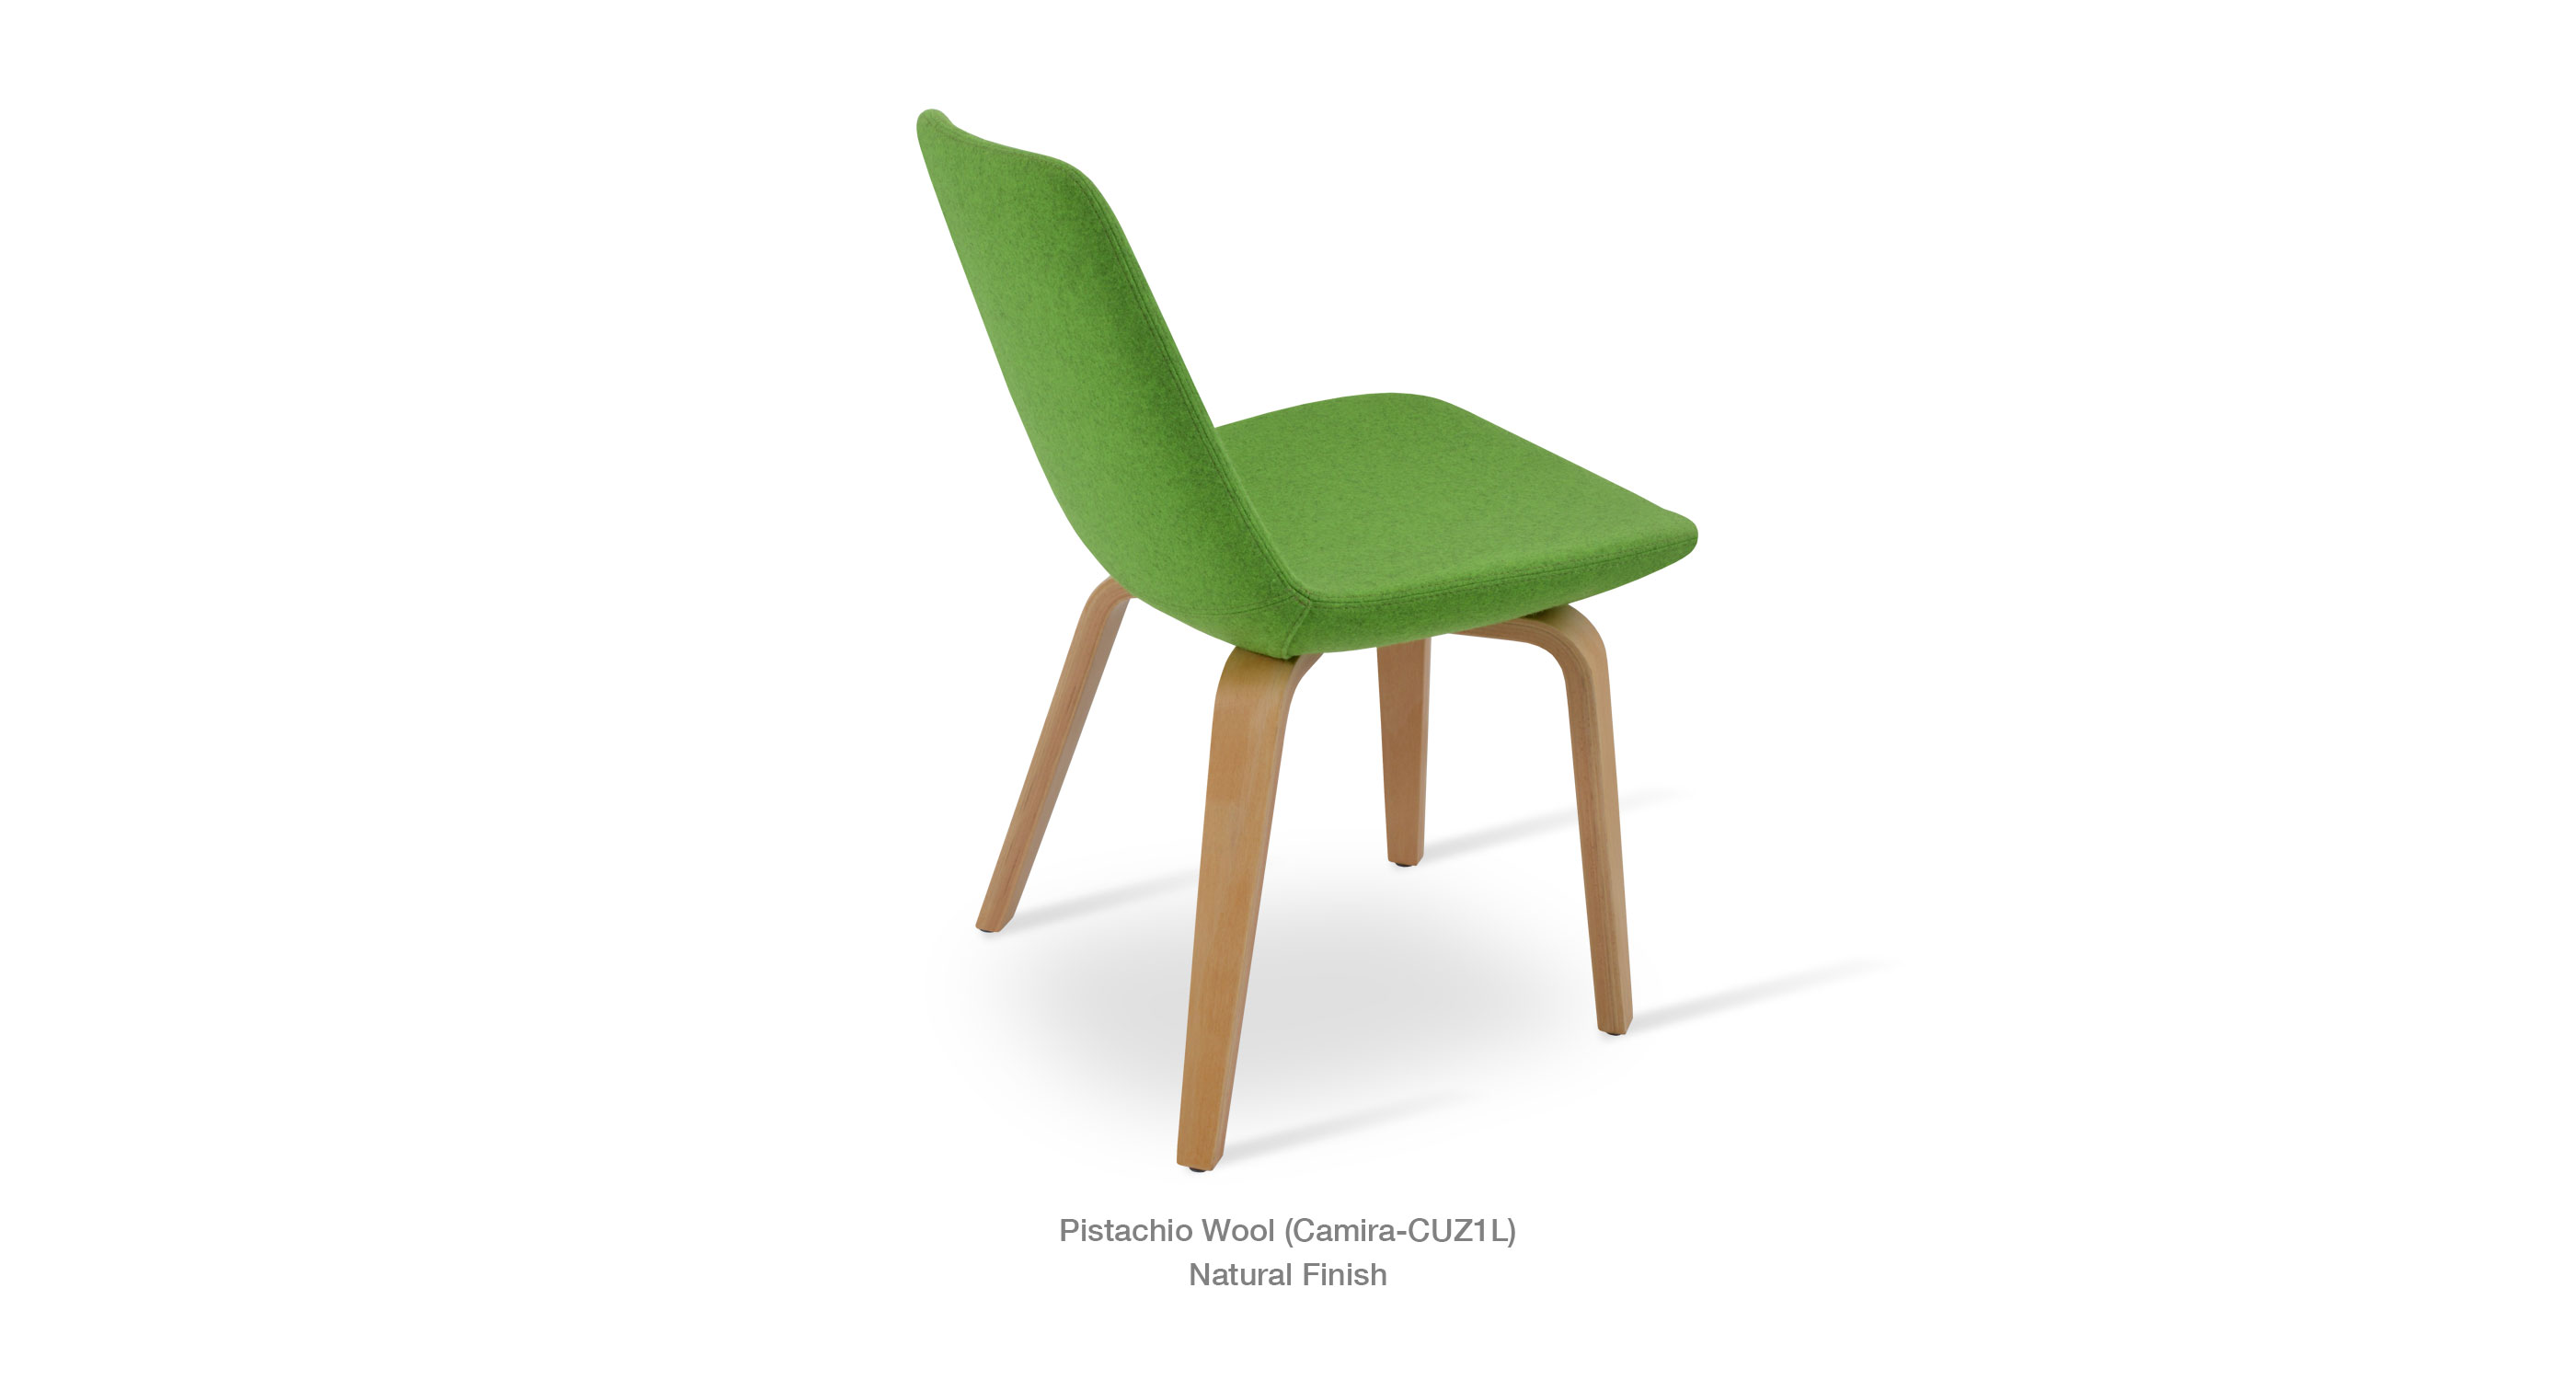 Eiffel Plywood pistachio natural